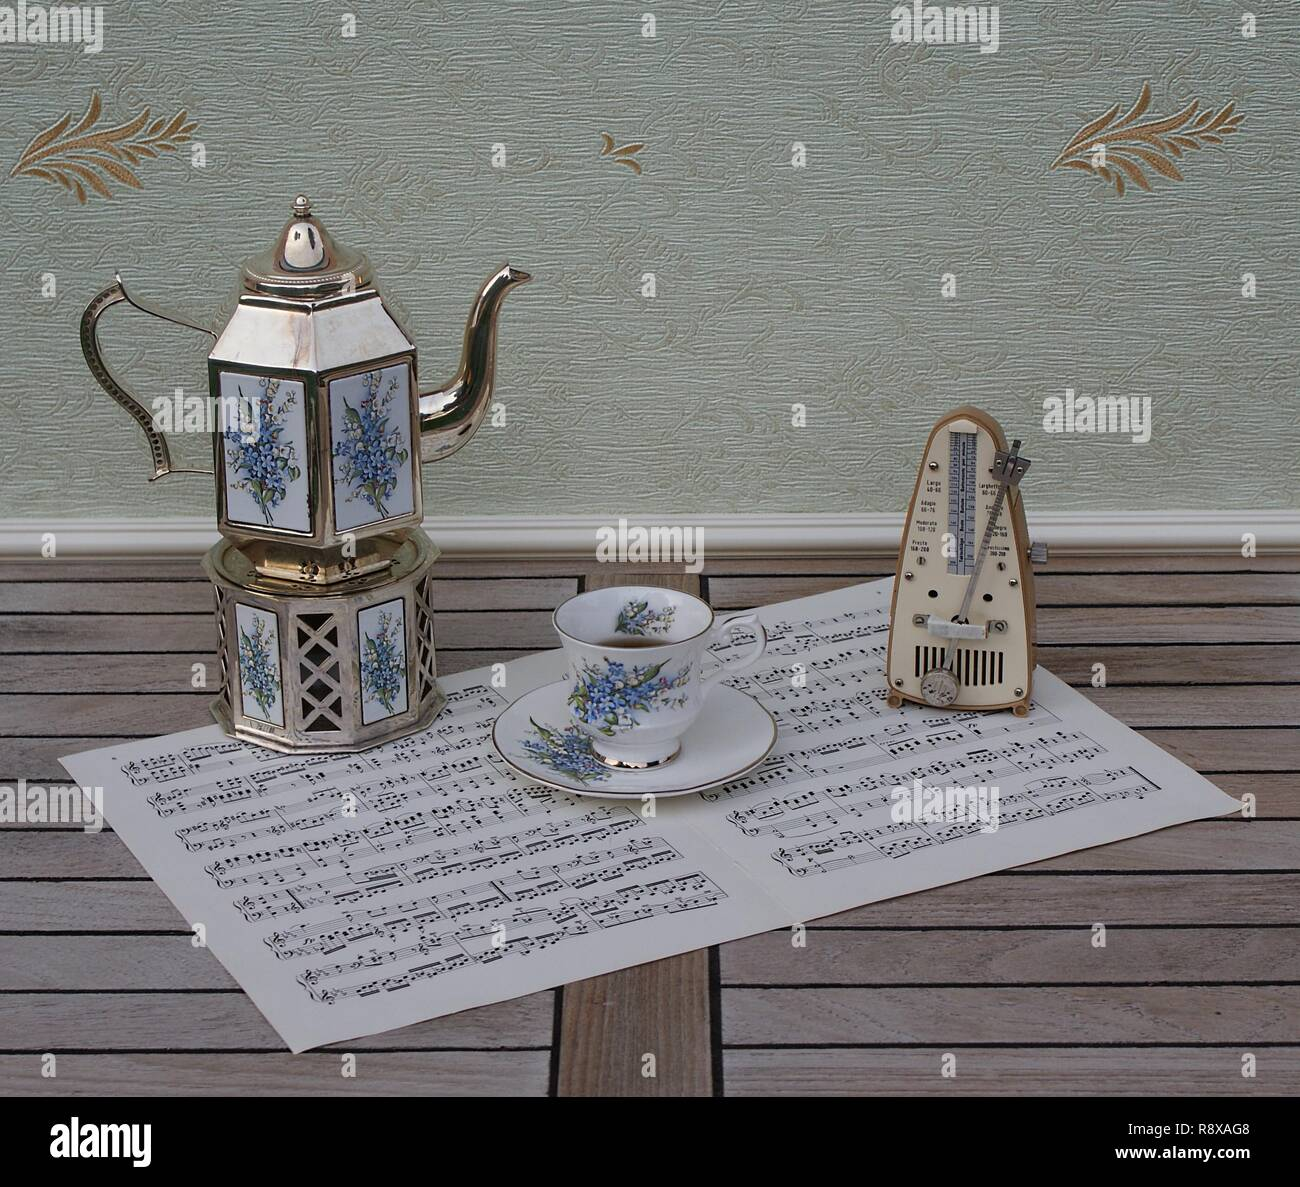 English teacup and saucer, silver-plated teapot on a silver stove, with floral decor and metronome for music on a sheet of music - Stock Image